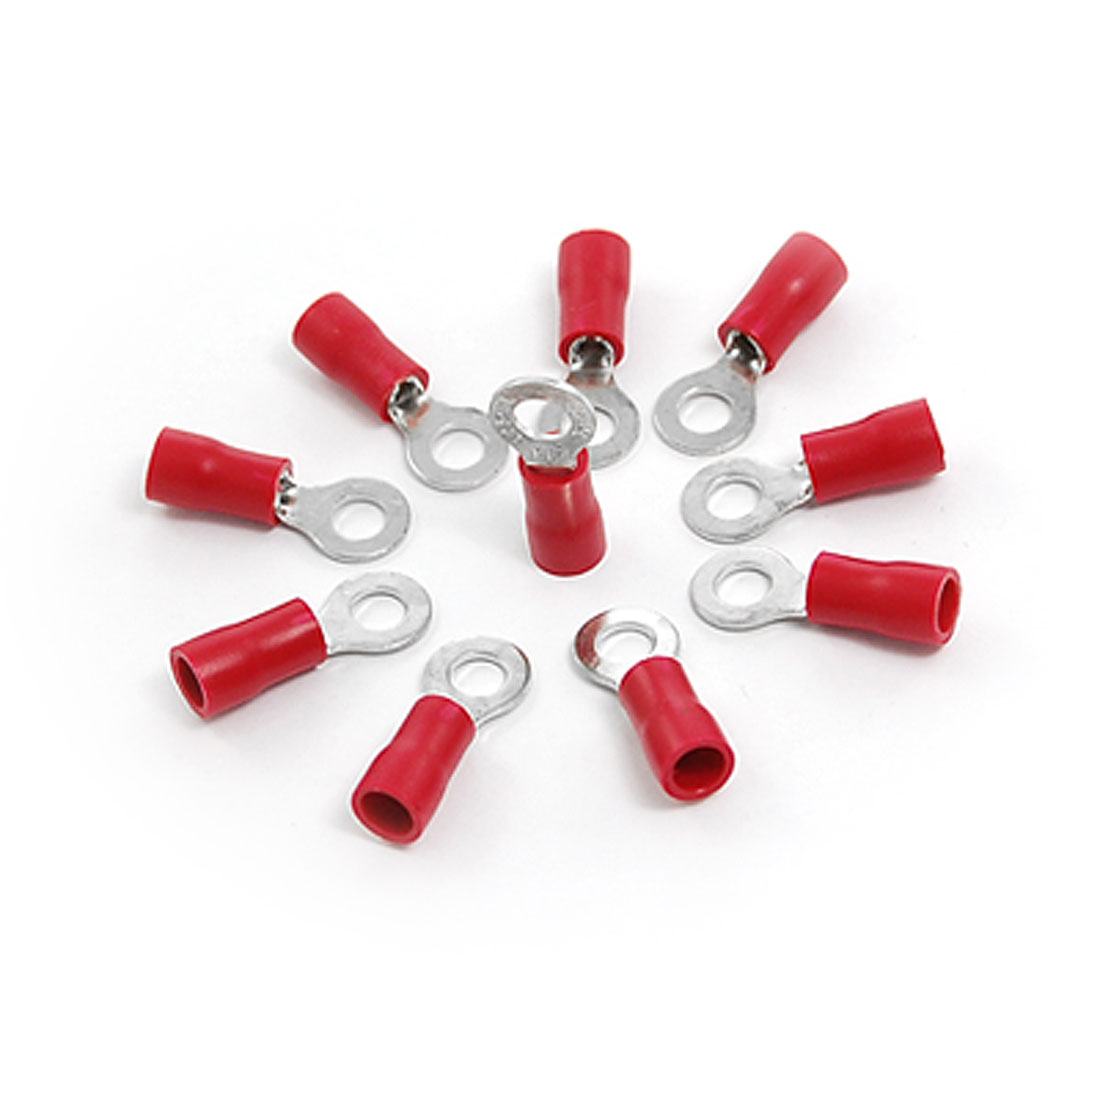 10 Pcs Red PVC Sleeve Pre Insulated Ring Terminals RV1.25-4L